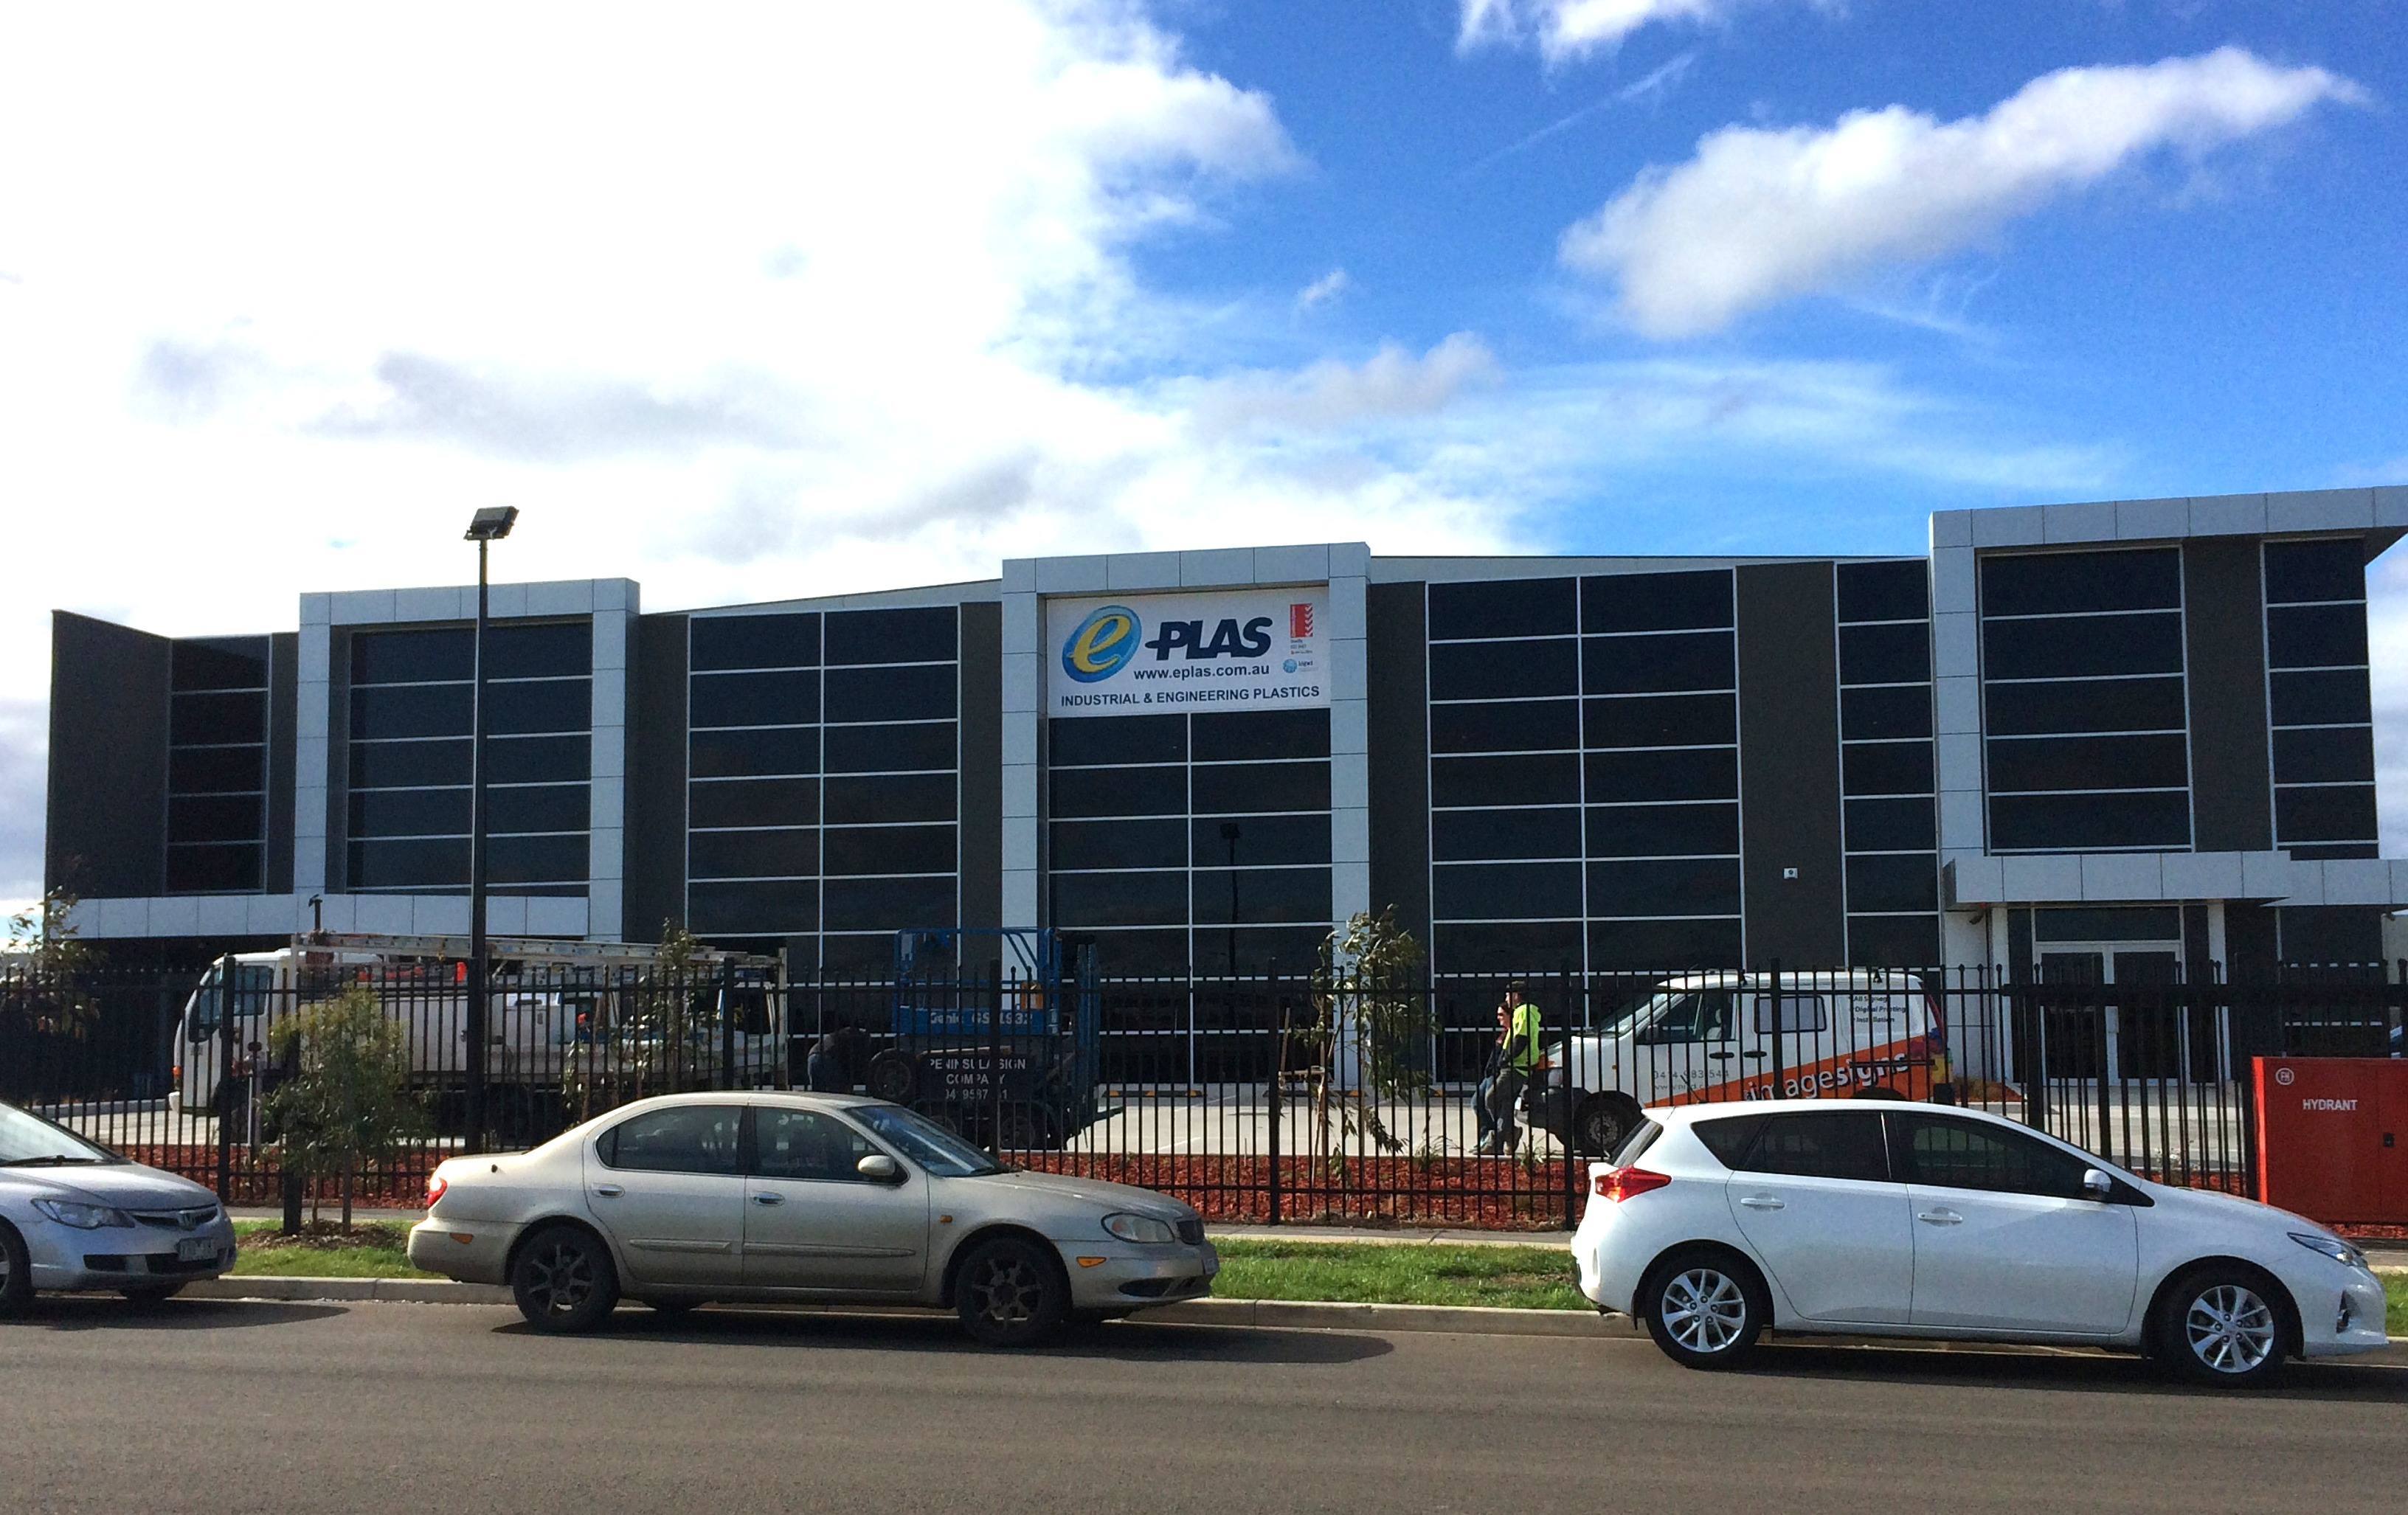 E-Plas Headquarters